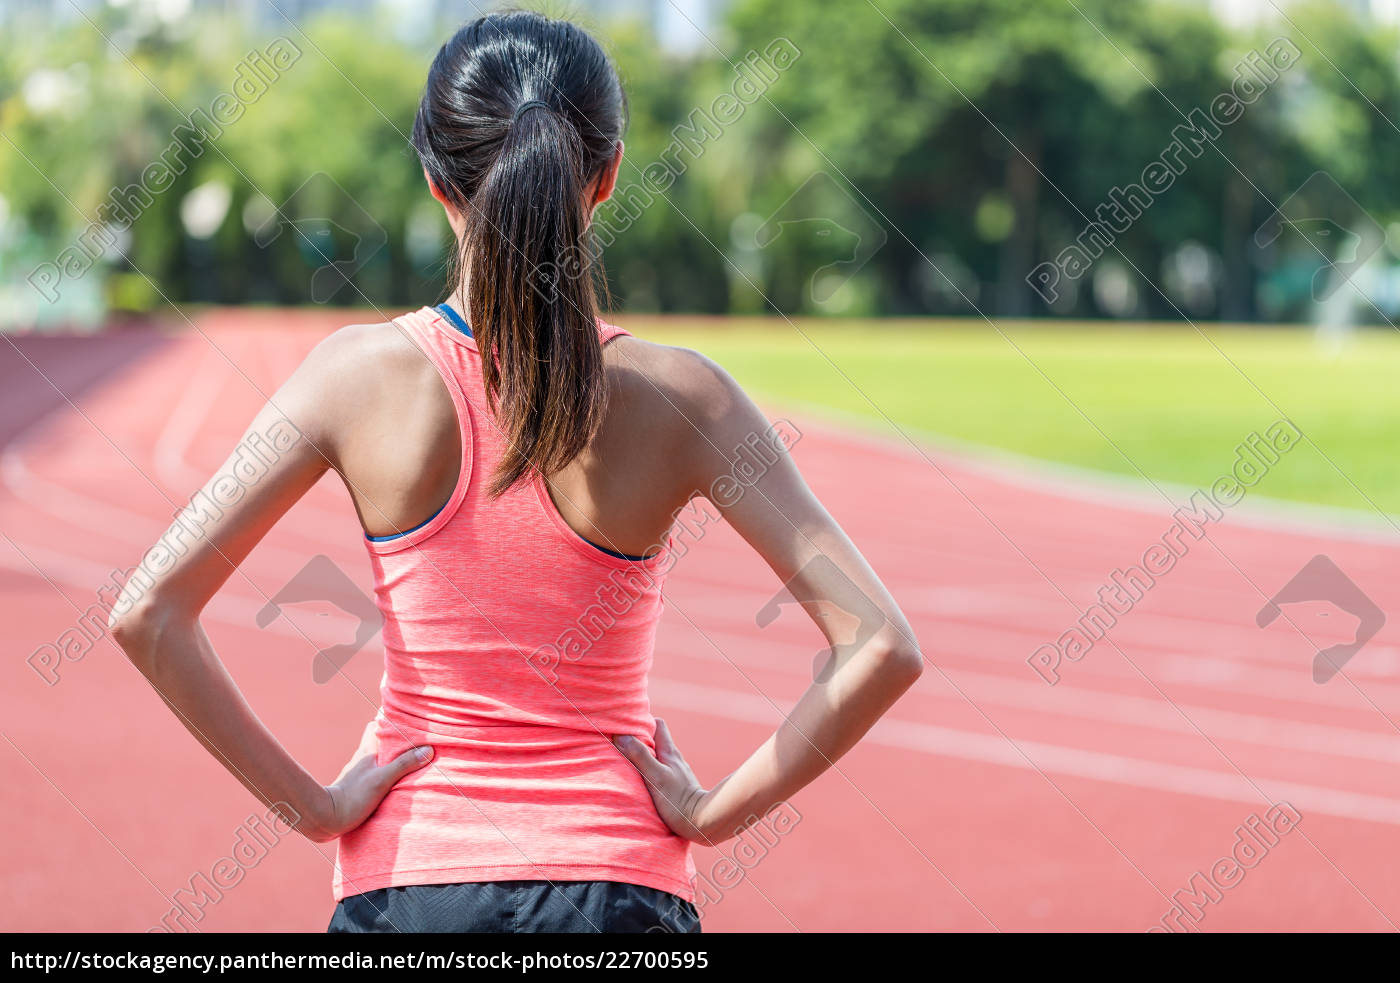 back, view, of, sport, woman, in - 22700595